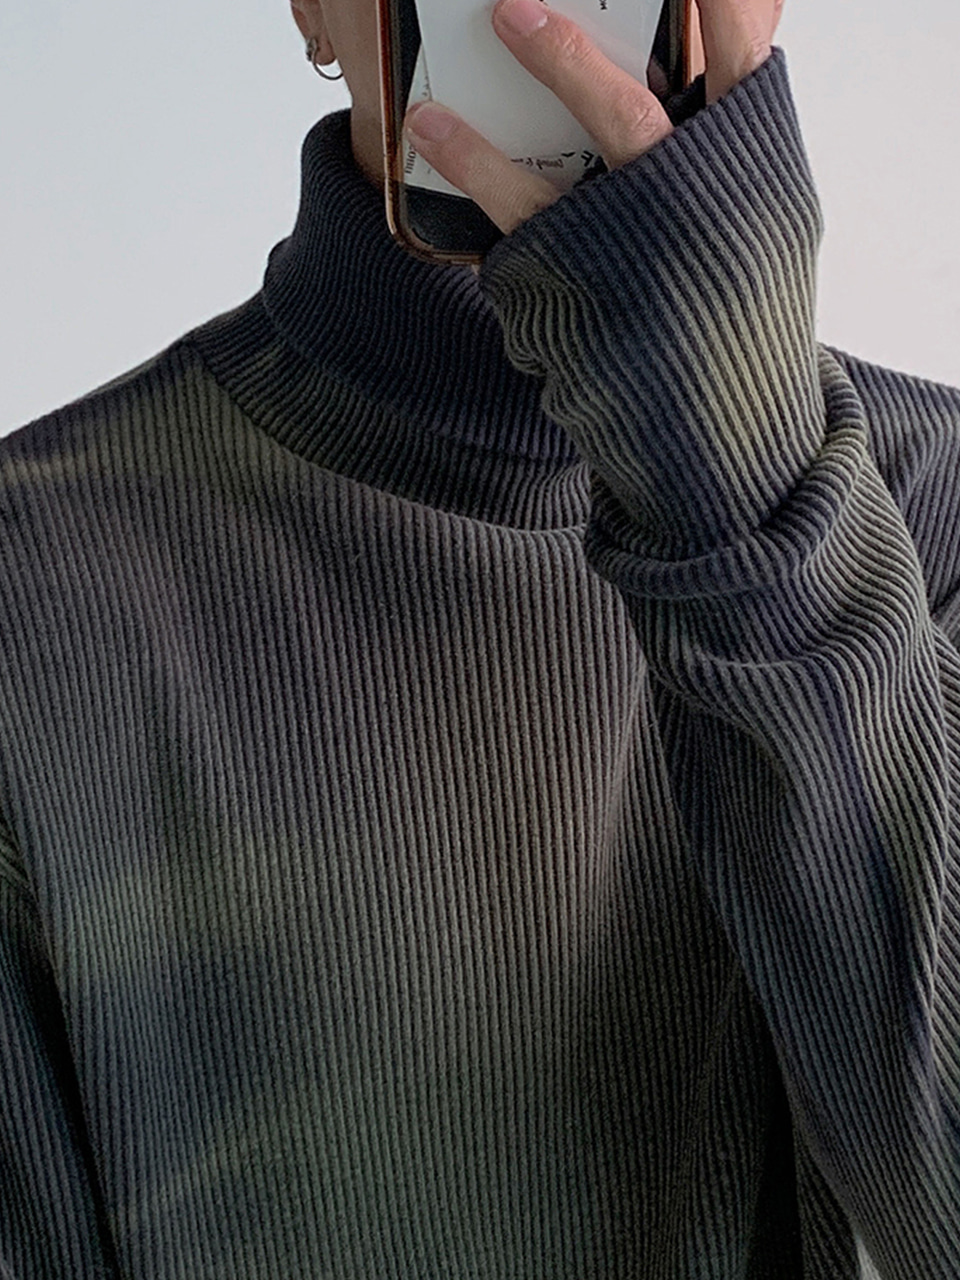 Matthew Washed Turtleneck Warmer Knit (2color)